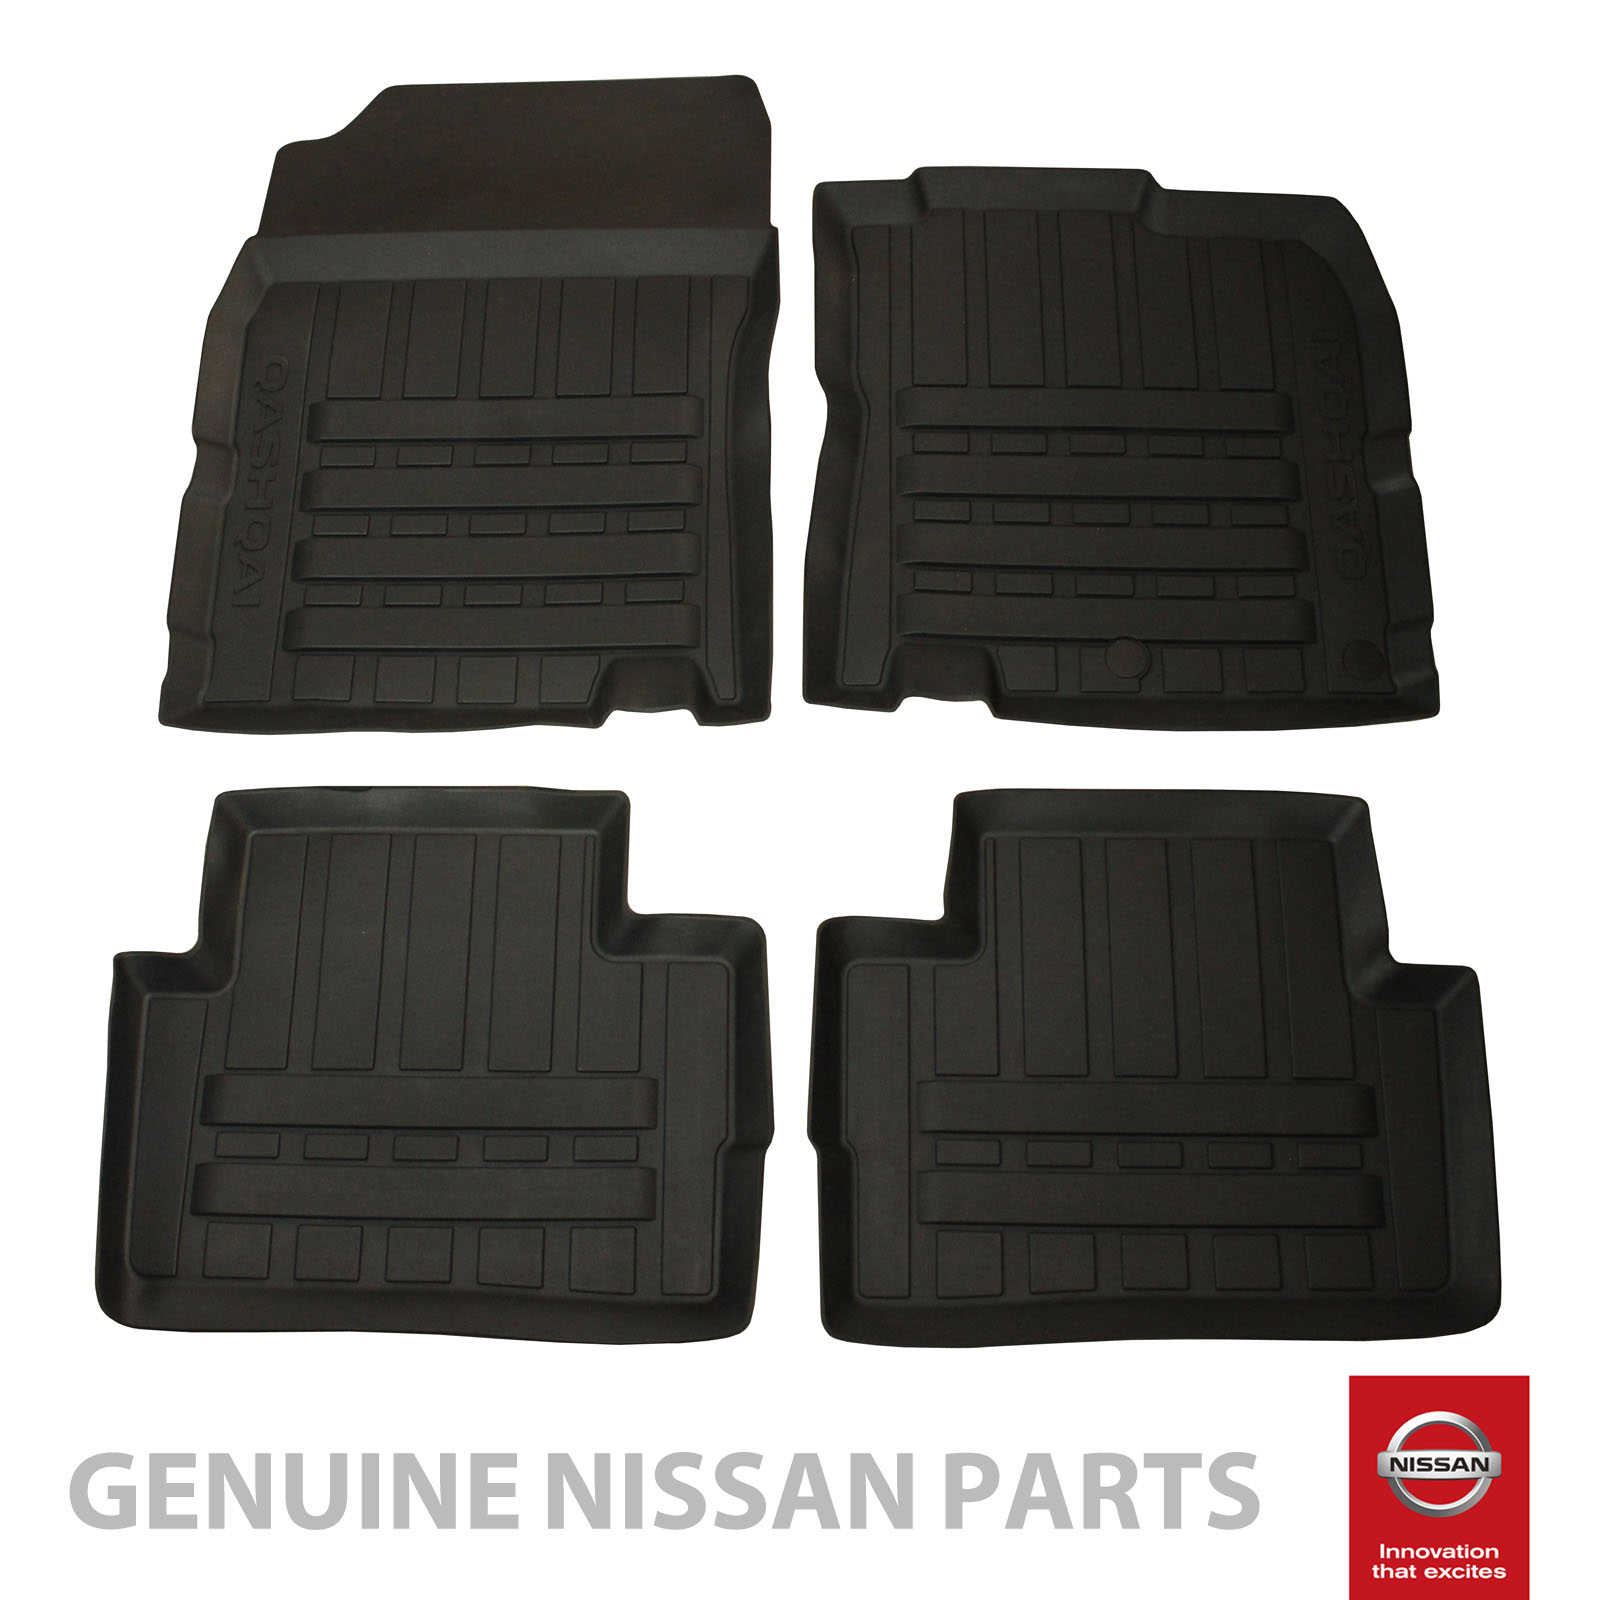 Floor mats qashqai - Fits Nissan Qashqai Tailored Rubber Front Rear Car Floor Mats Set Ke7584e289